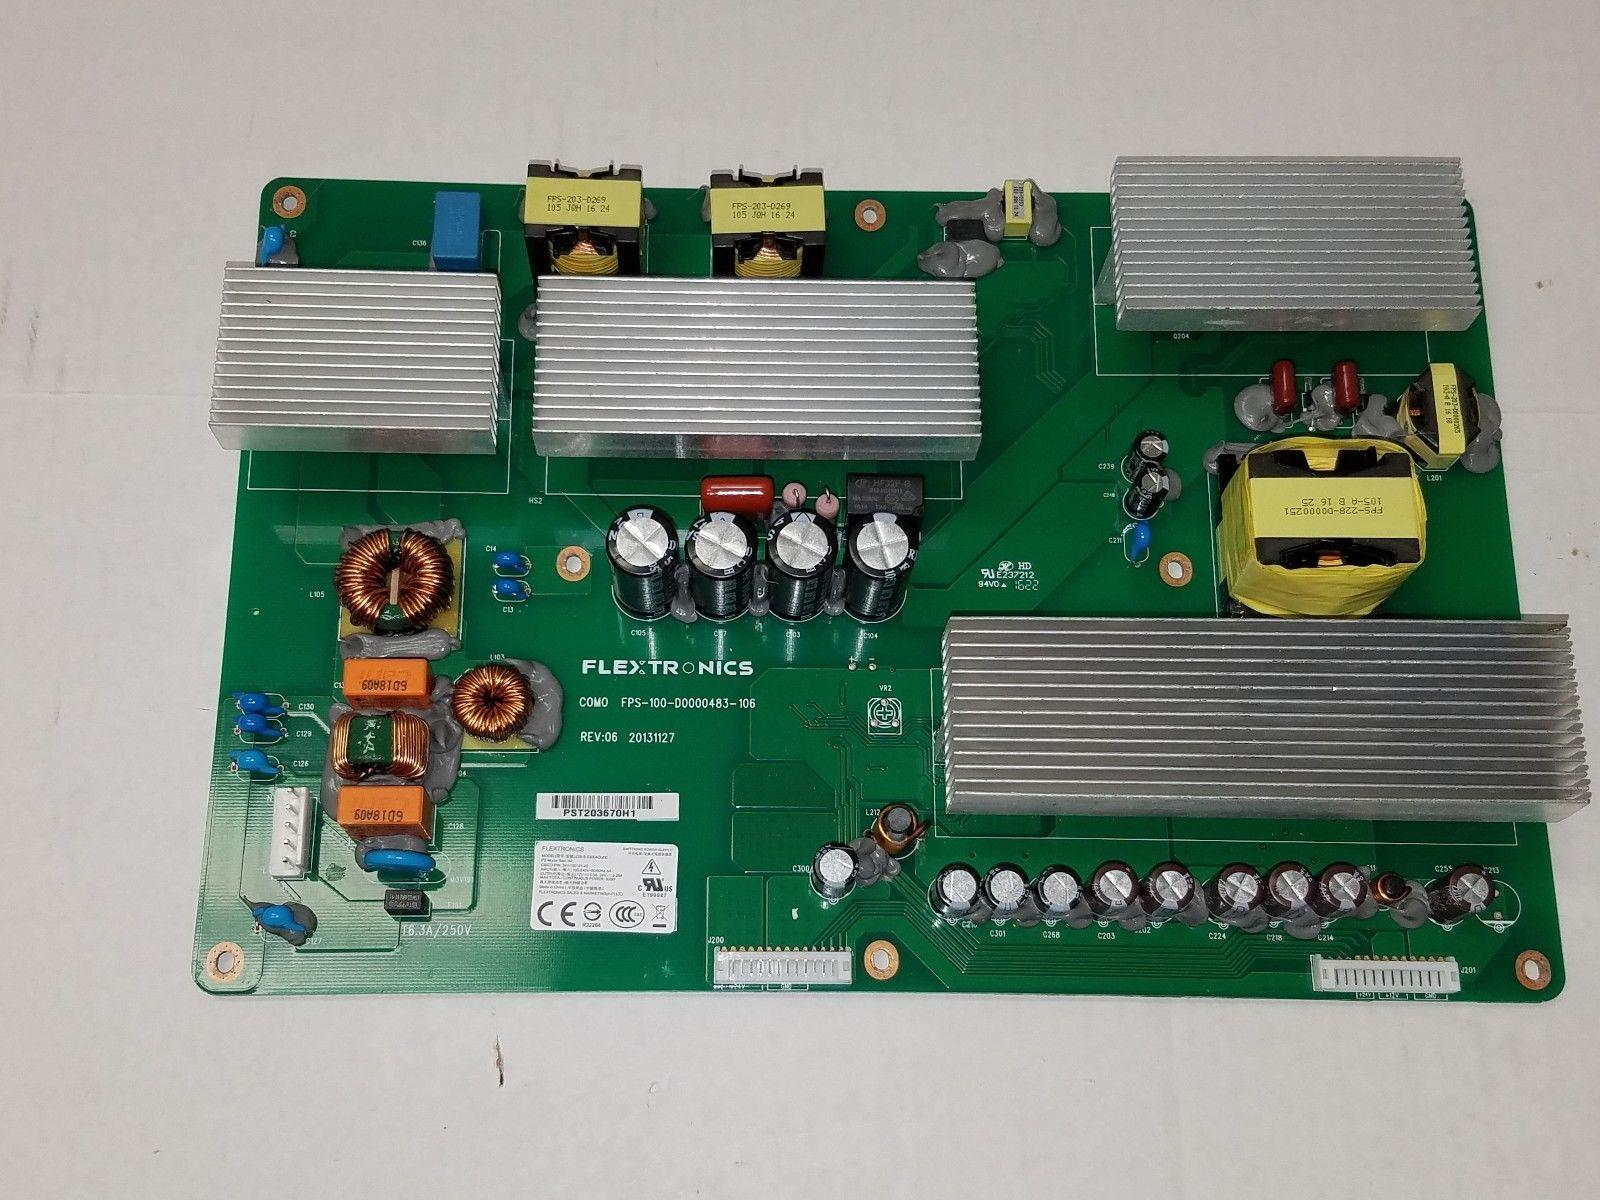 Cisco TTC60-19 P/N 68-100201-04-C0 Power Supply 341-100101-02